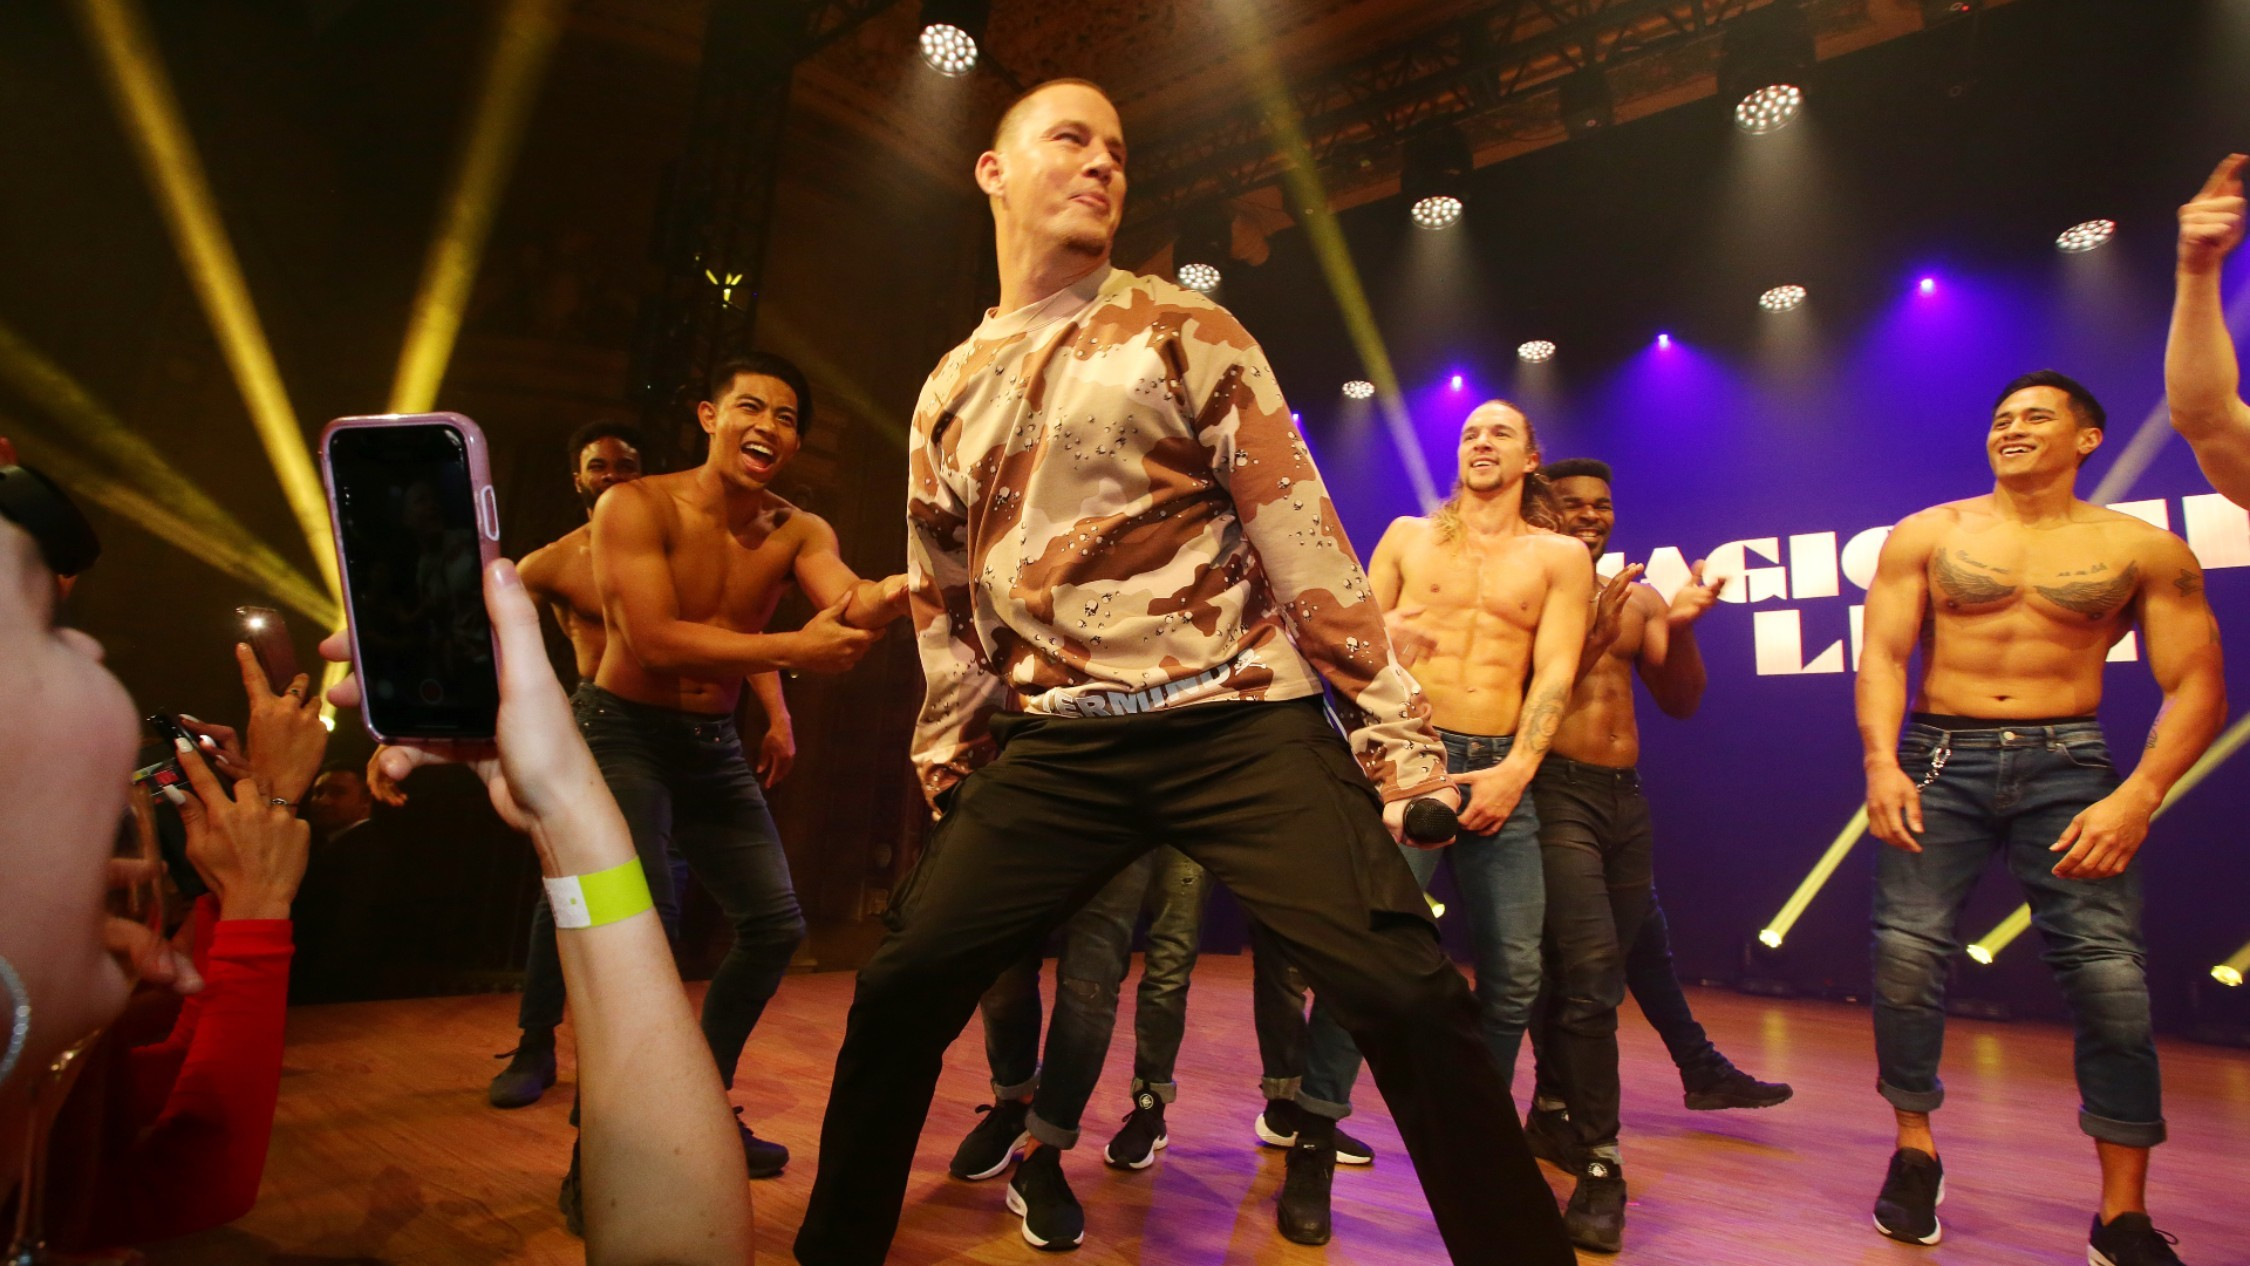 Channing Tatum's wild Magic Mike Live is ready to get you sweaty